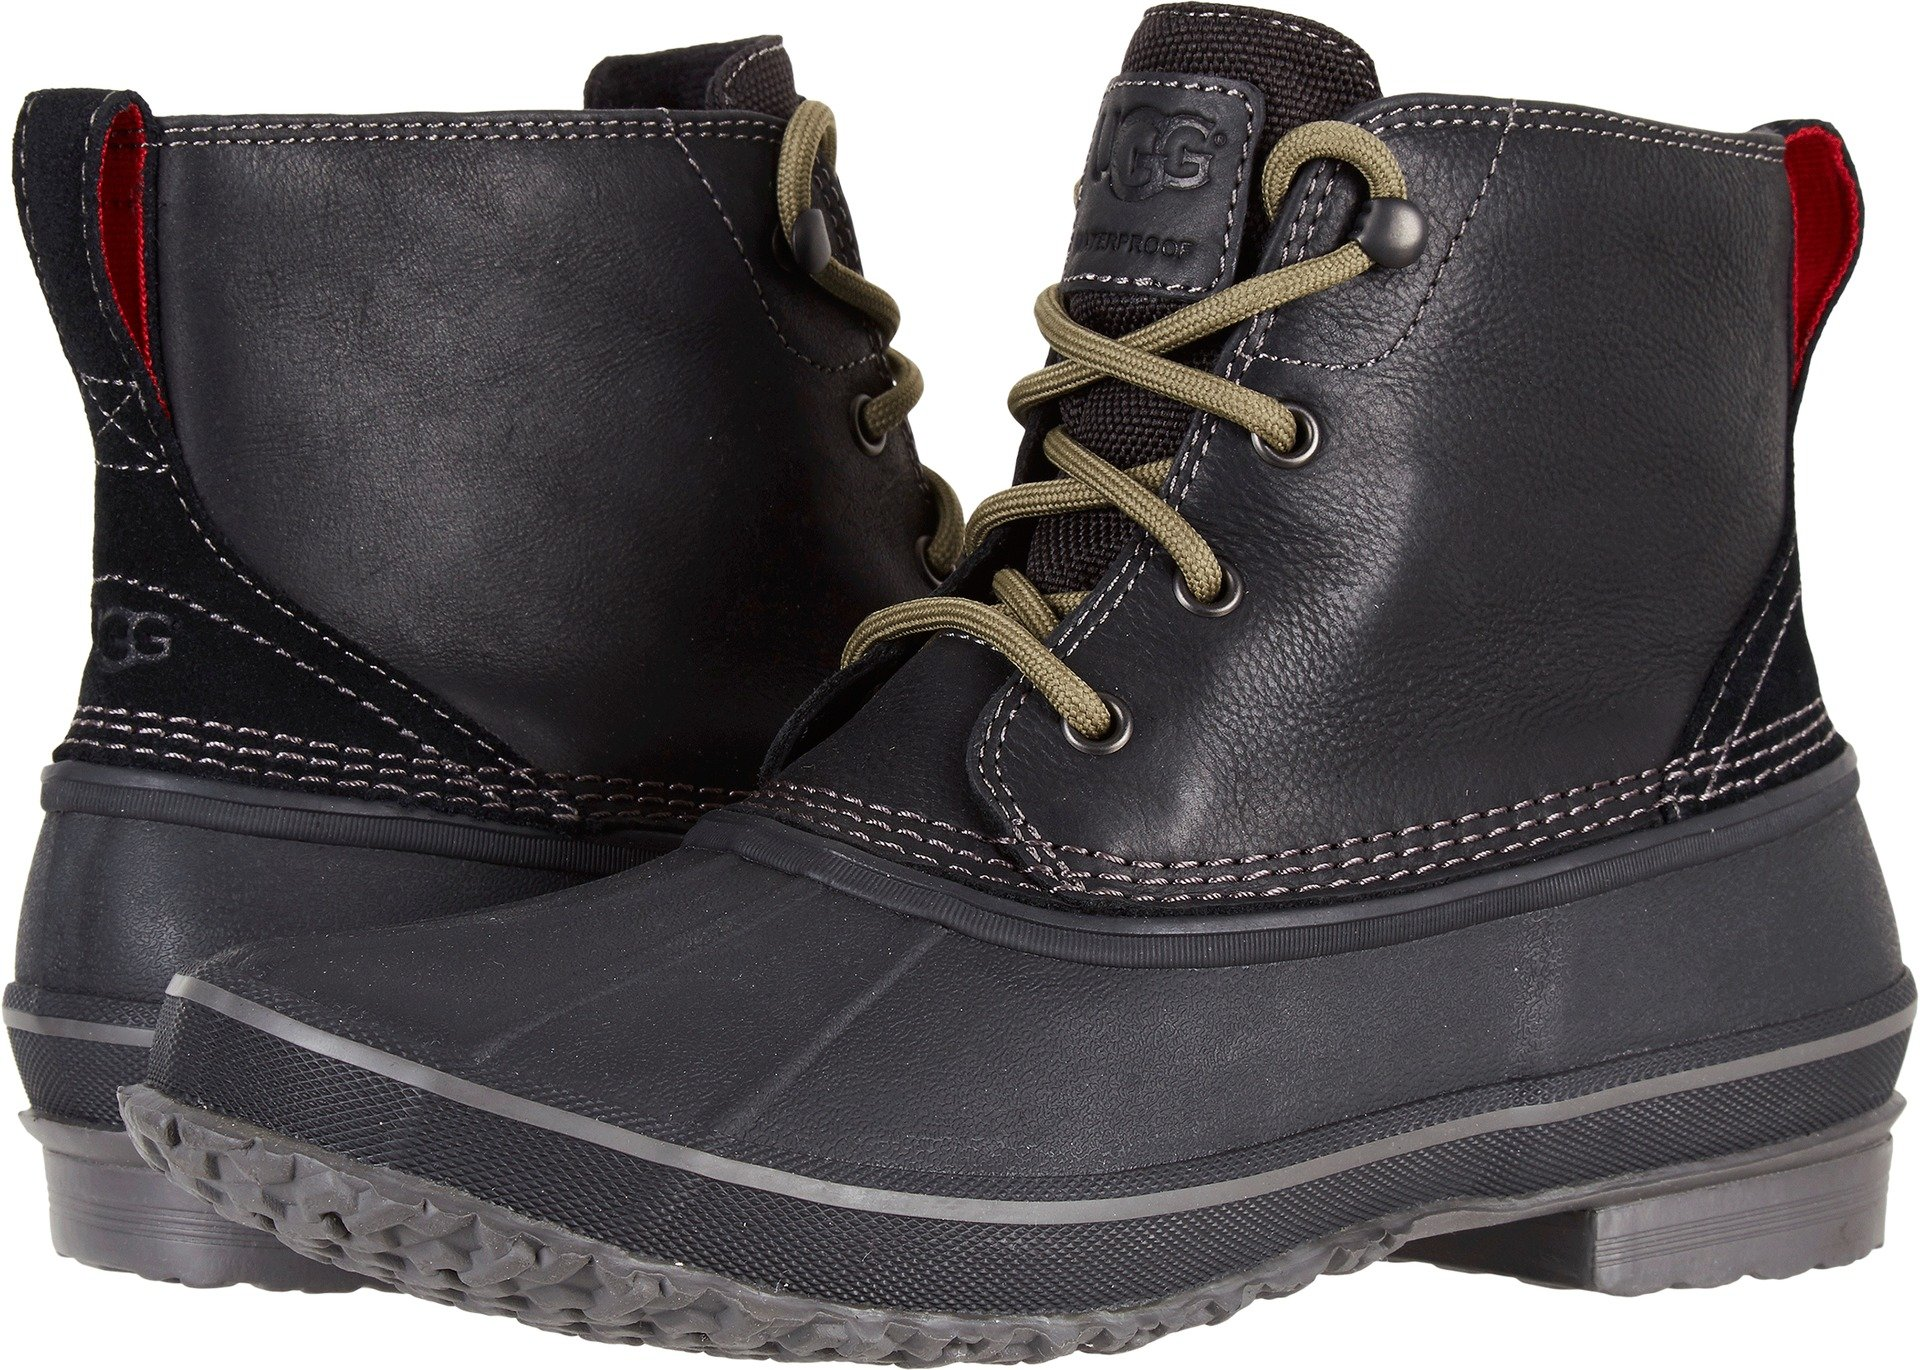 UGG Men's Zetik Winter Boot, Black, 14 M US by UGG